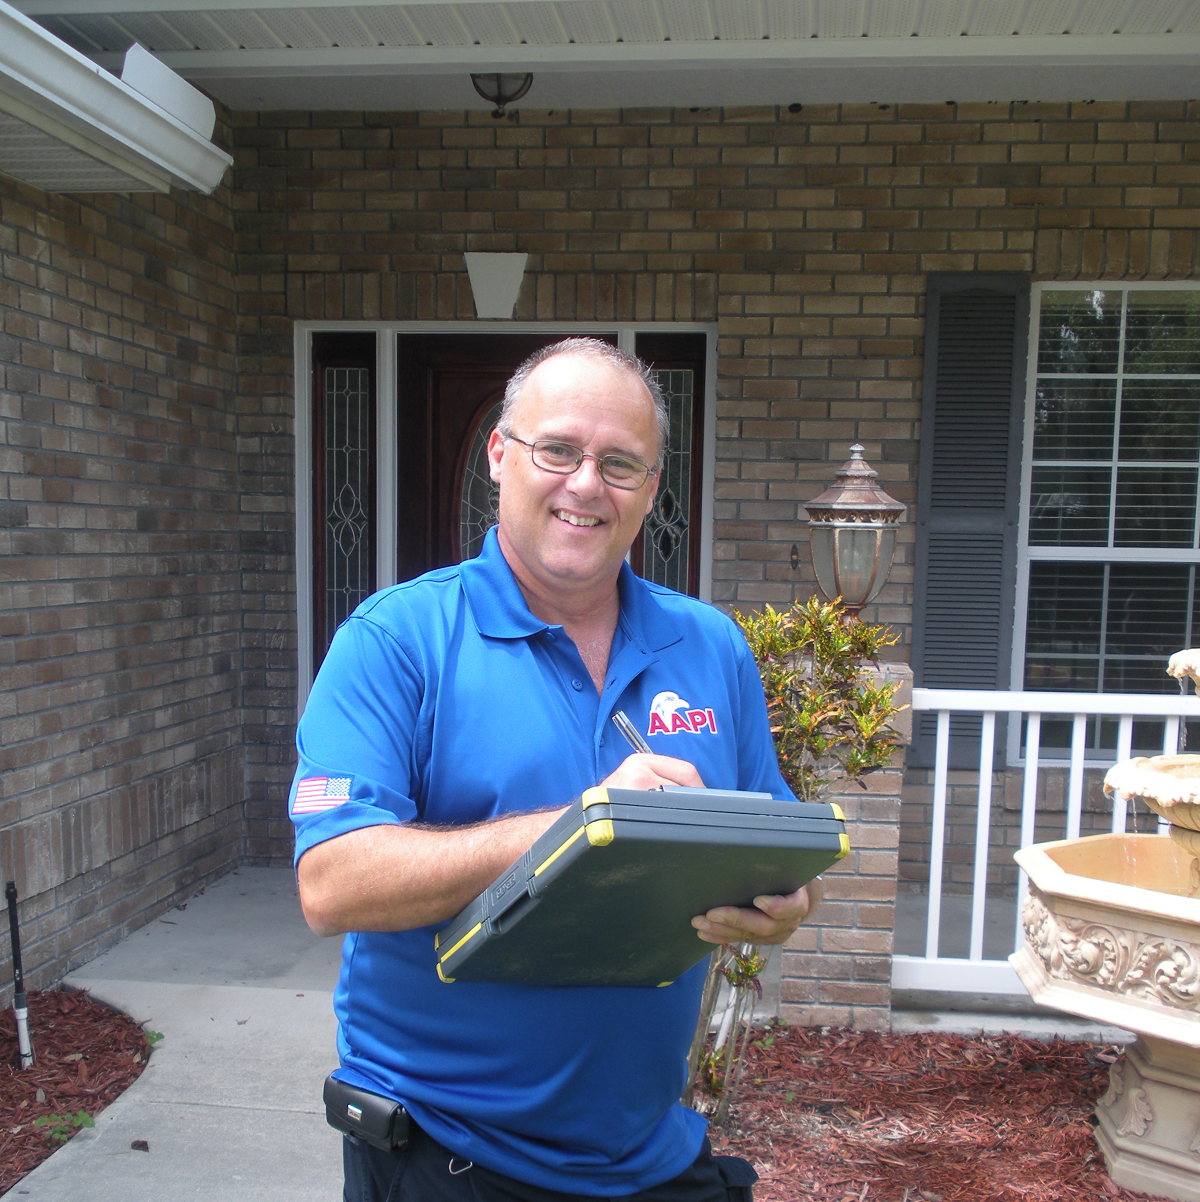 Home Inspector Lake Mary FL - Bill Ostoyic